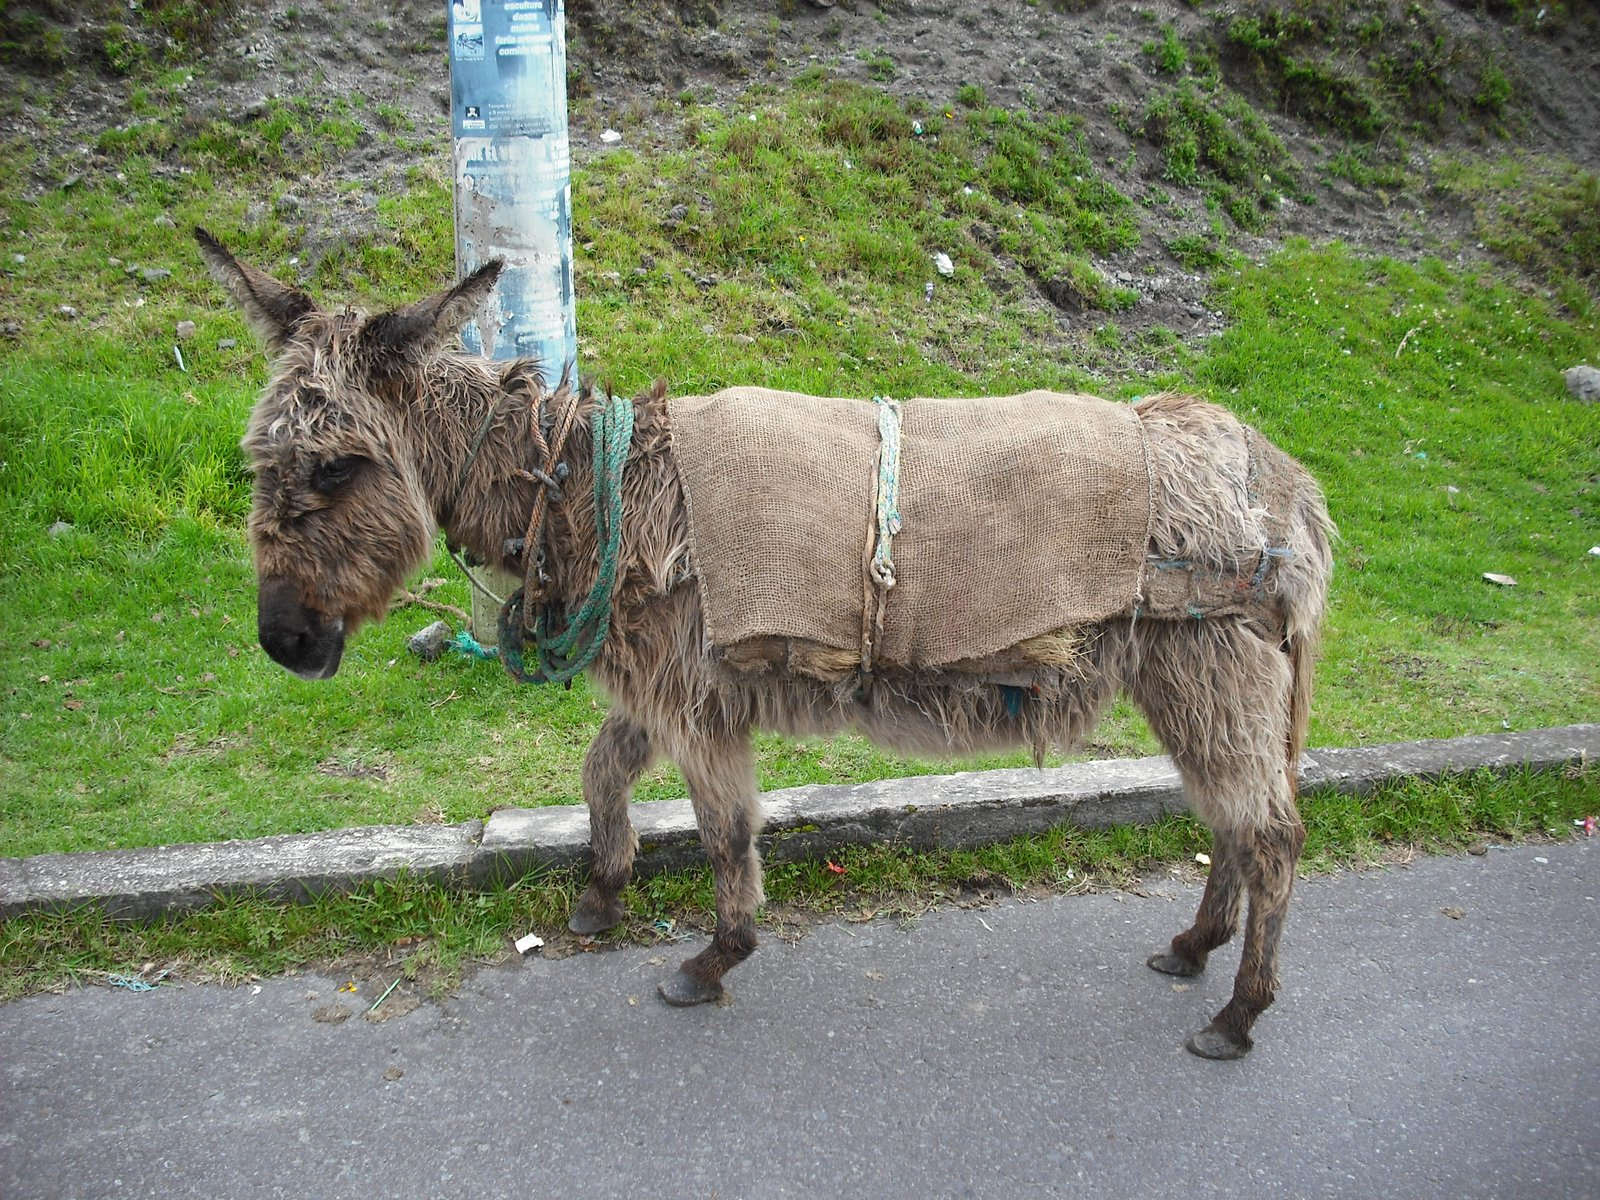 Saddest donkey ever